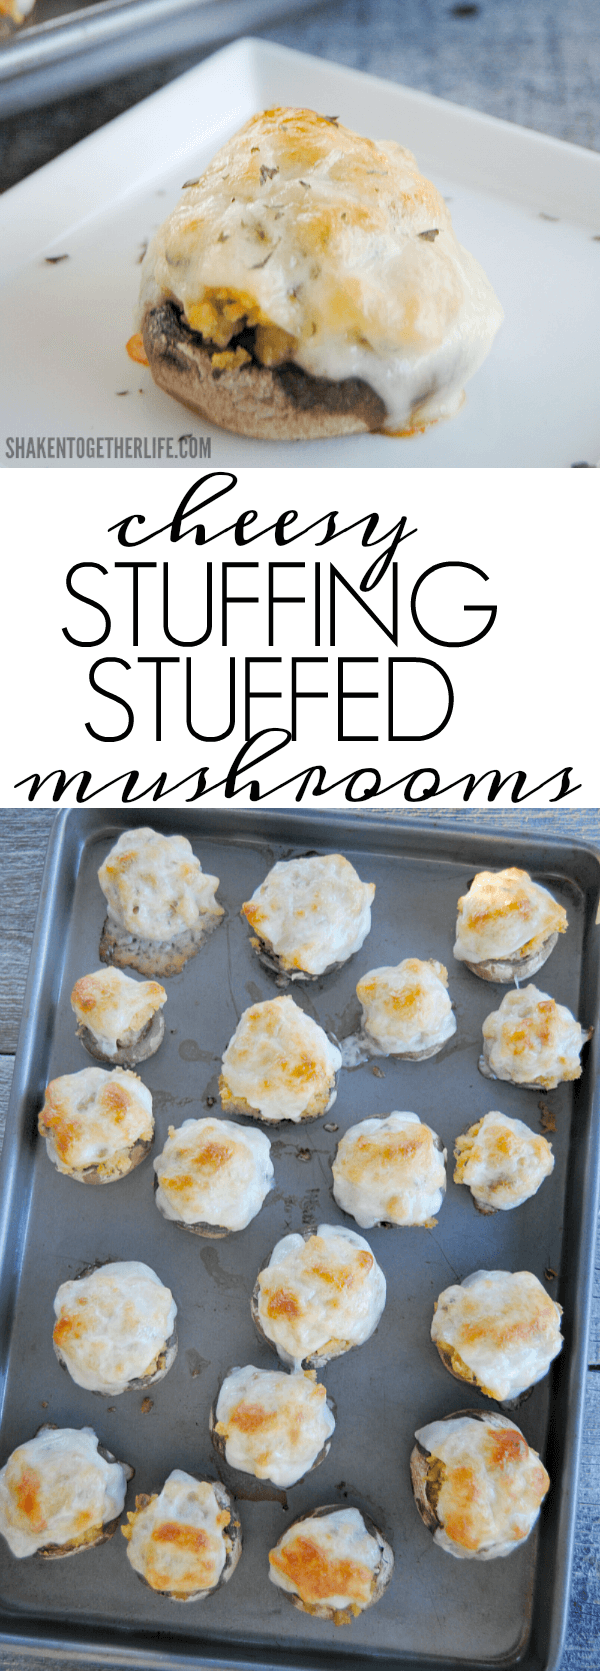 With only 3 ingredients, Cheesy Stuffing Stuffed Mushrooms are an easy game day or Thanksgiving appetizer!